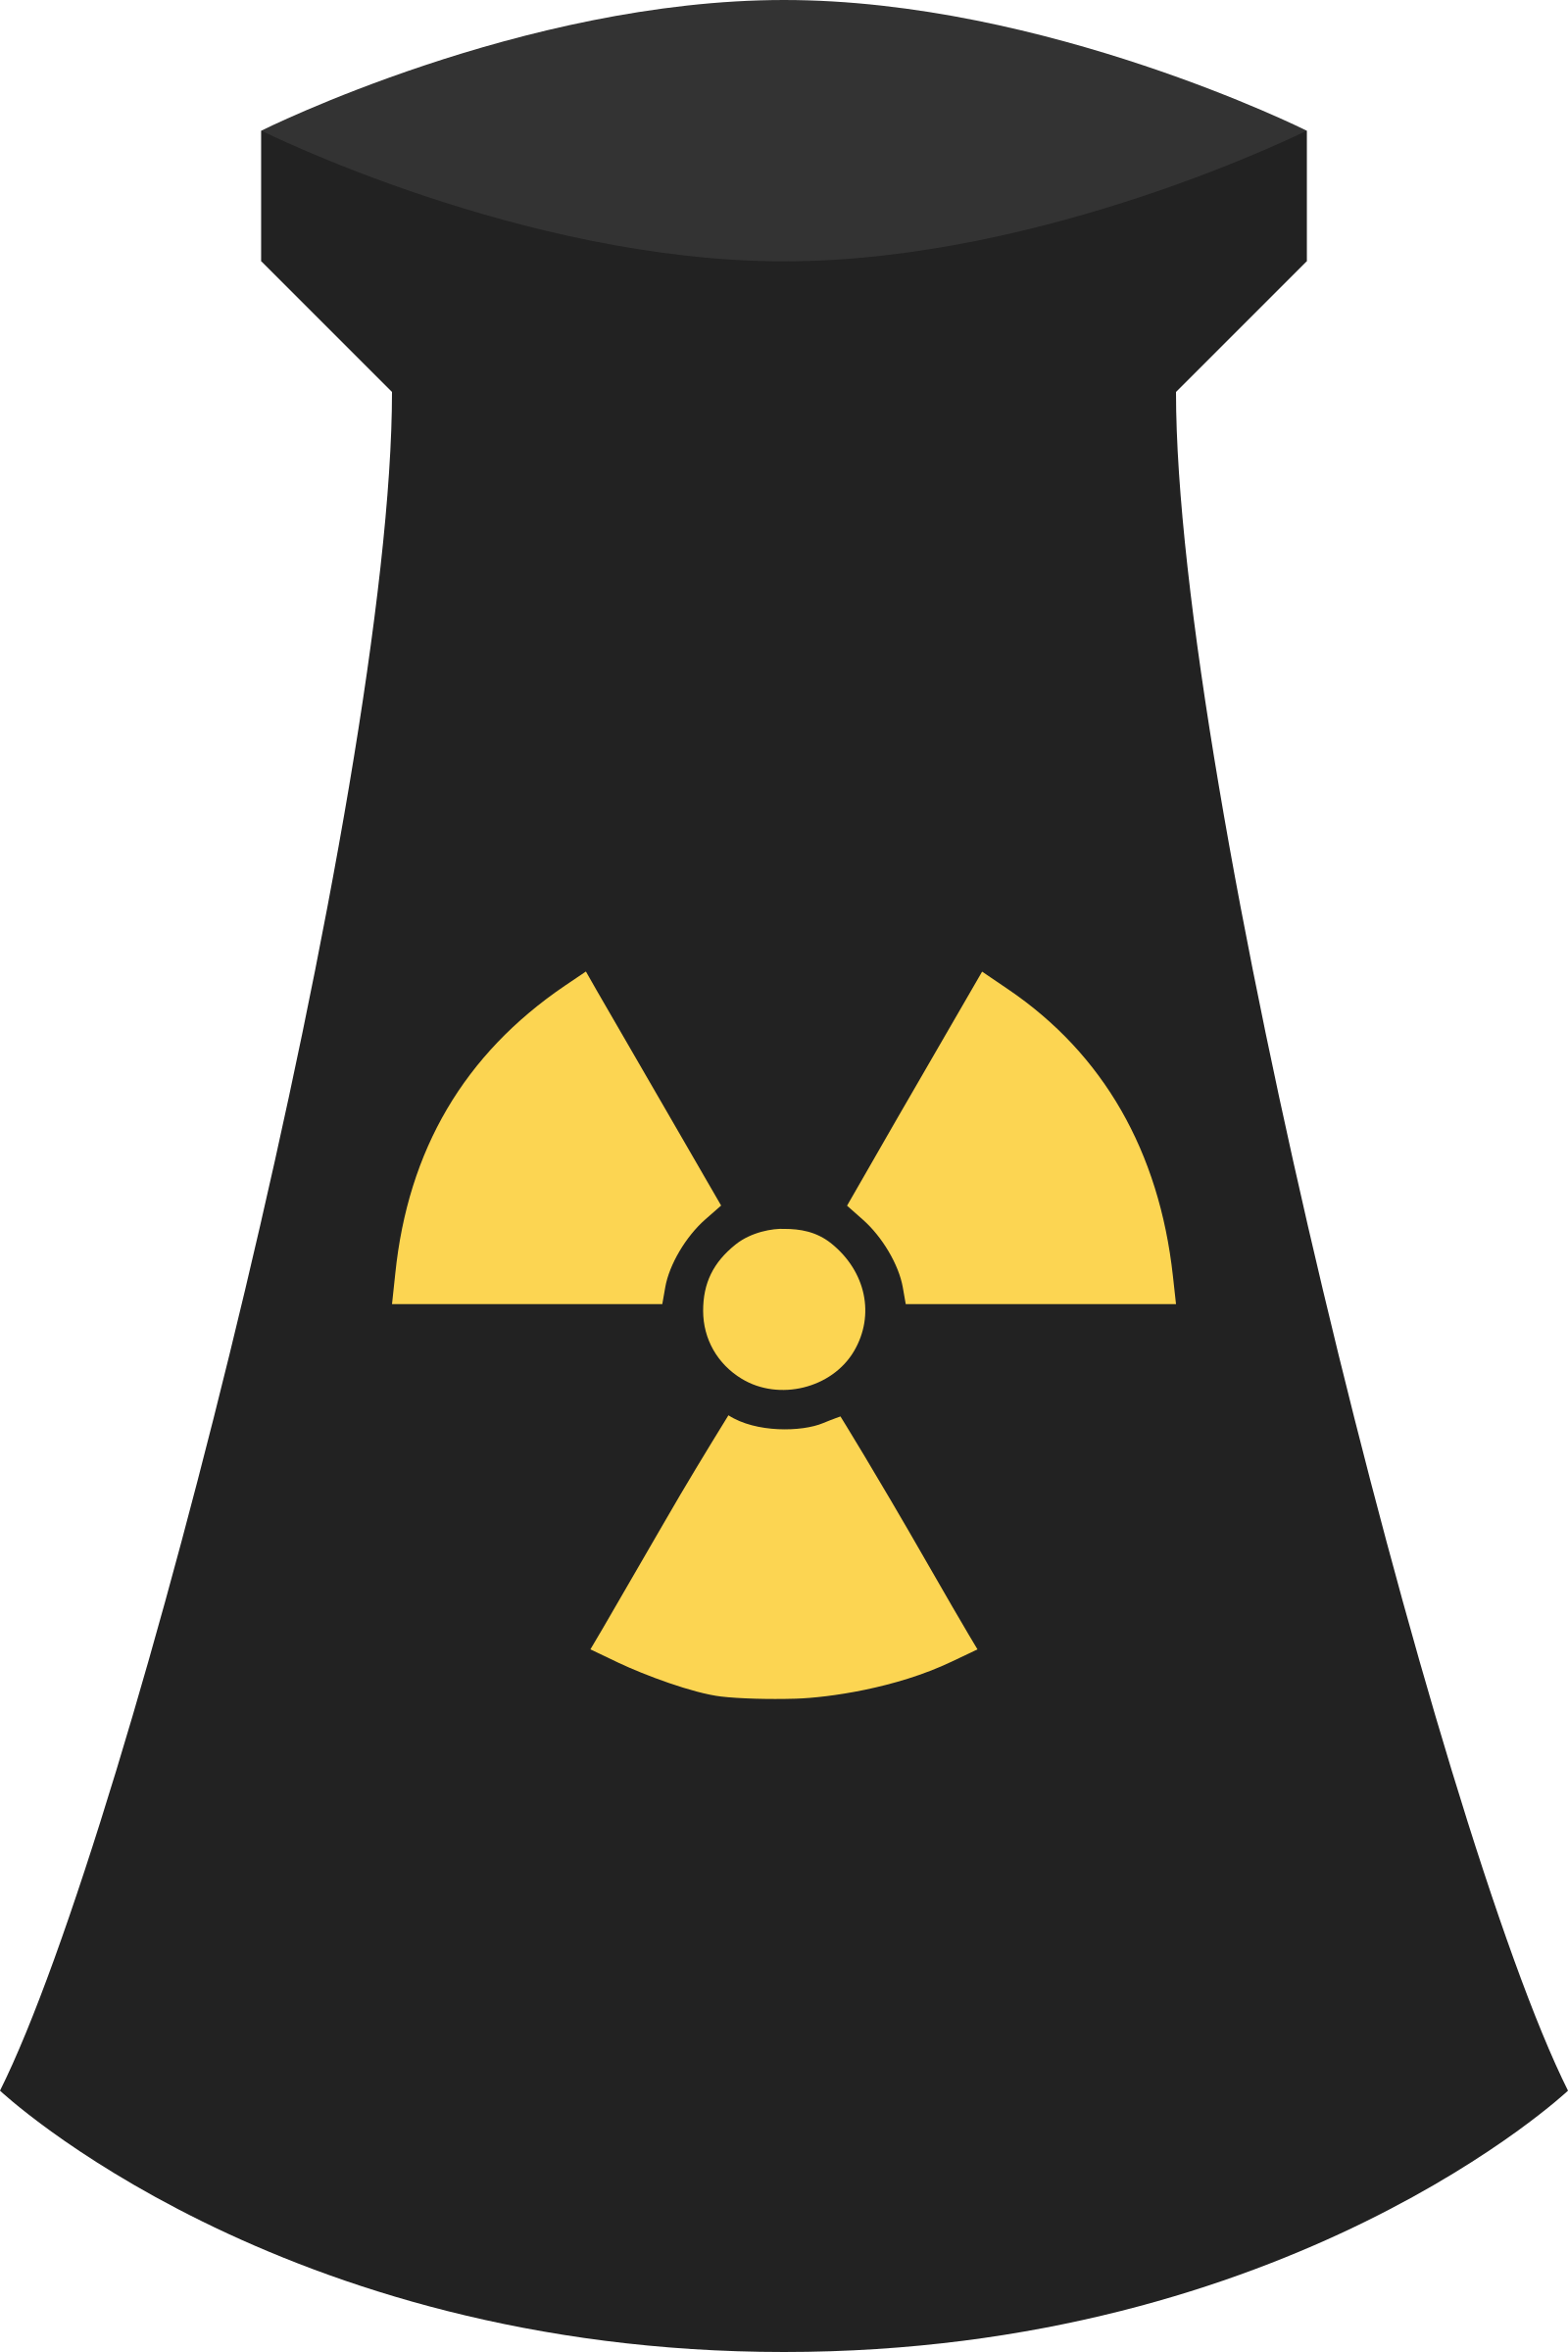 Nuclear Power Plant Icon Symbol 3 by qubodup